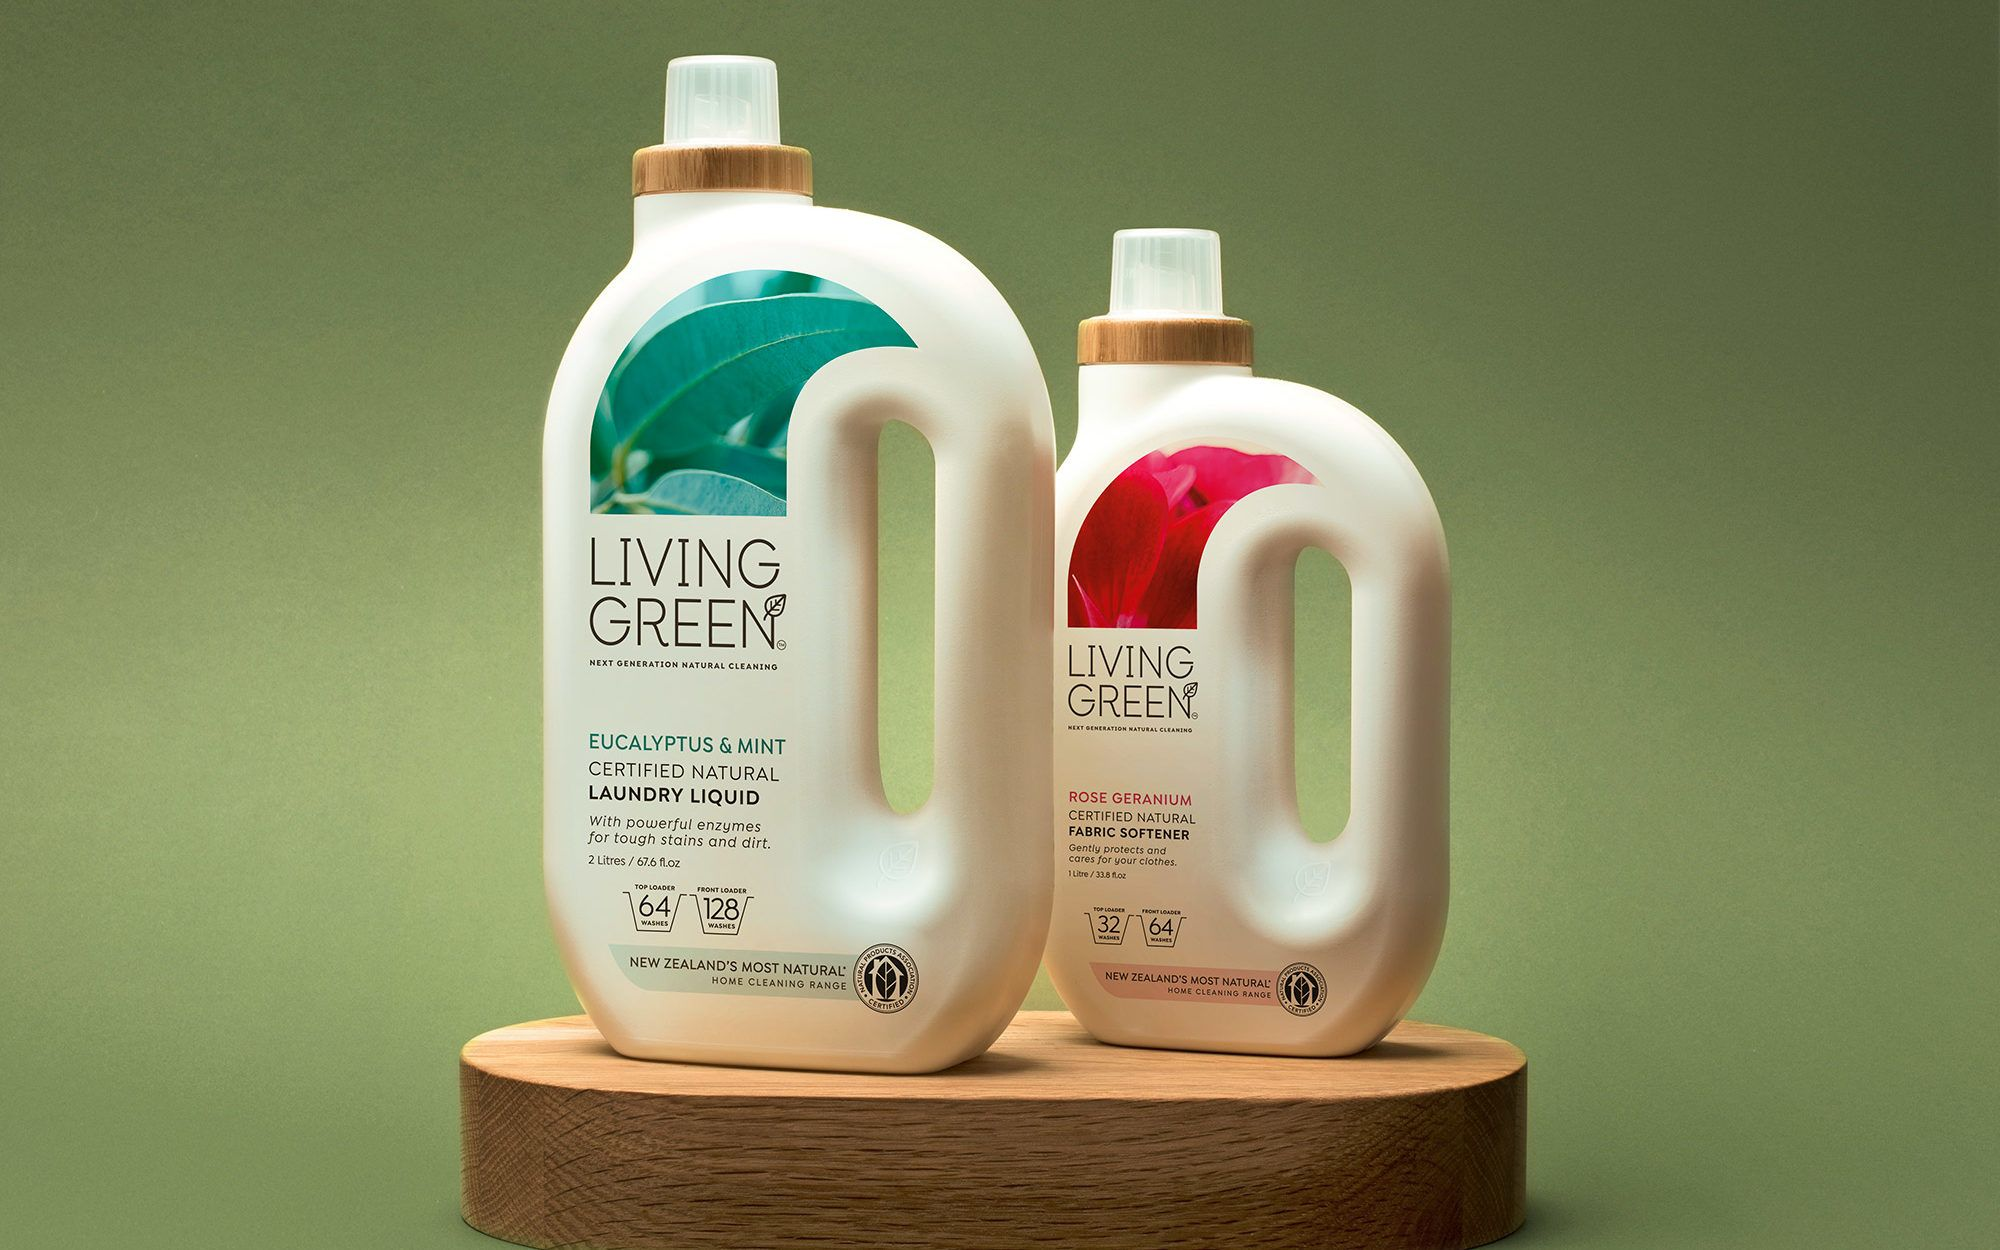 Living Green Brother Design Agency In 2020 Shampoo Design